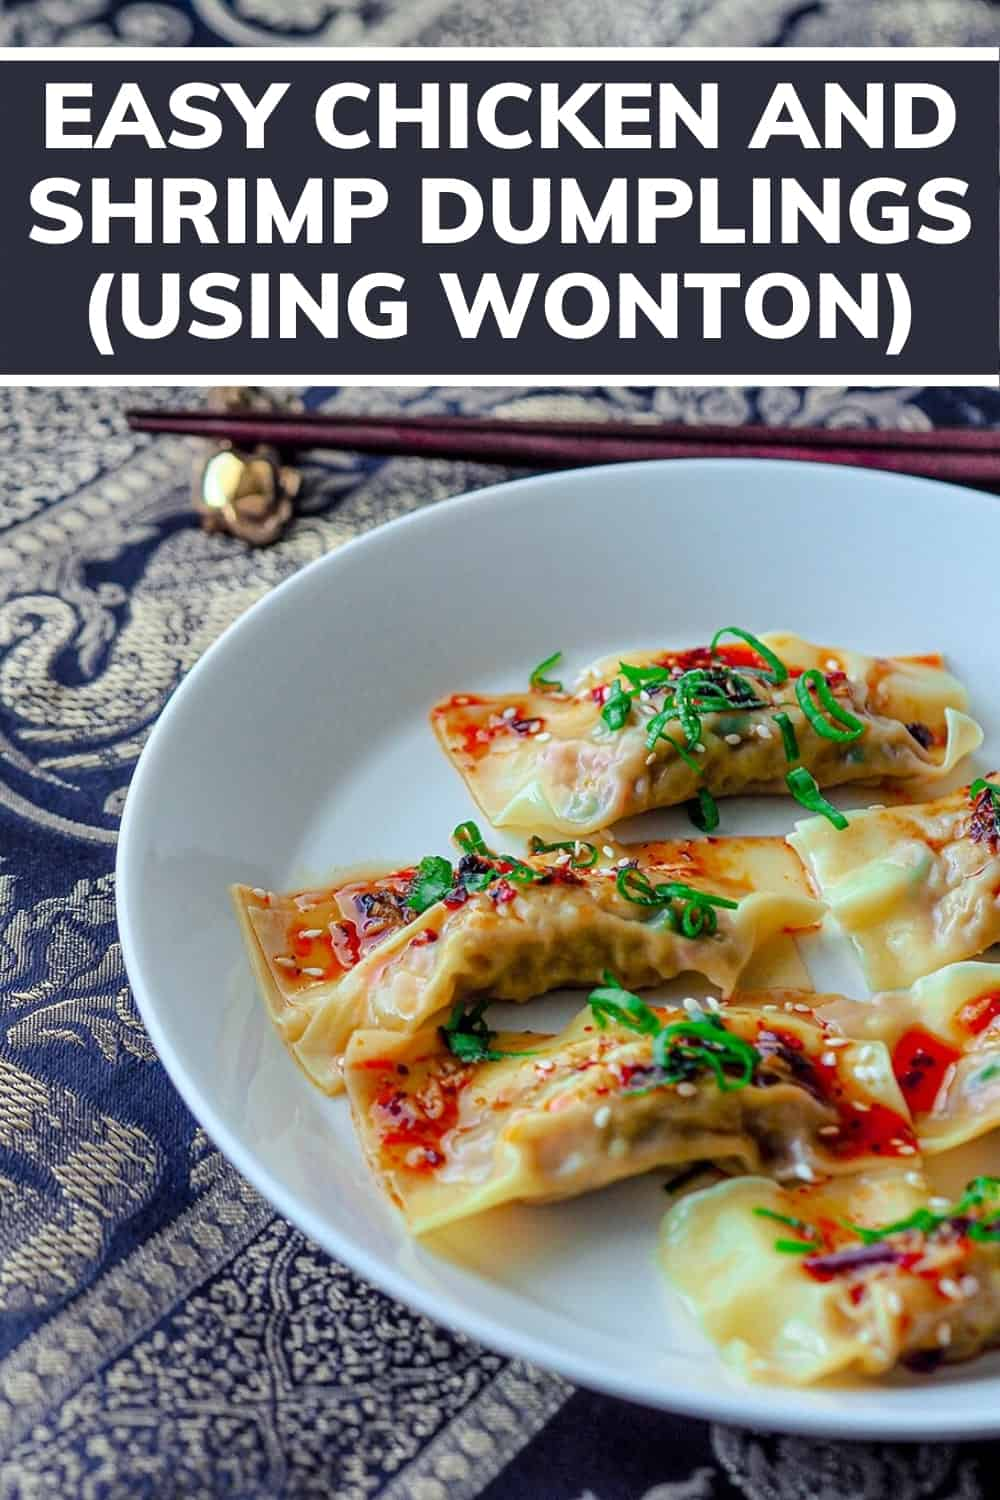 Looking for the best dumplings recipe? This is a really easy chicken and shrimp wonton dumplings recipe that can be eaten in soups or just simply steamed. Try it now or pin it for later! #cookingforone #30minutemeals #singleserving #recipeforone #foodrecipes #onedishkitchen #dinnerideas #easyrecipe #dumplings | home made dumplings recipe | how to make | chicken dumplings | healthy dumplings | dumplings easy | easy chicken dumplings | chicken dumplings | easy dumplings | dumplings chicken | Dairy free